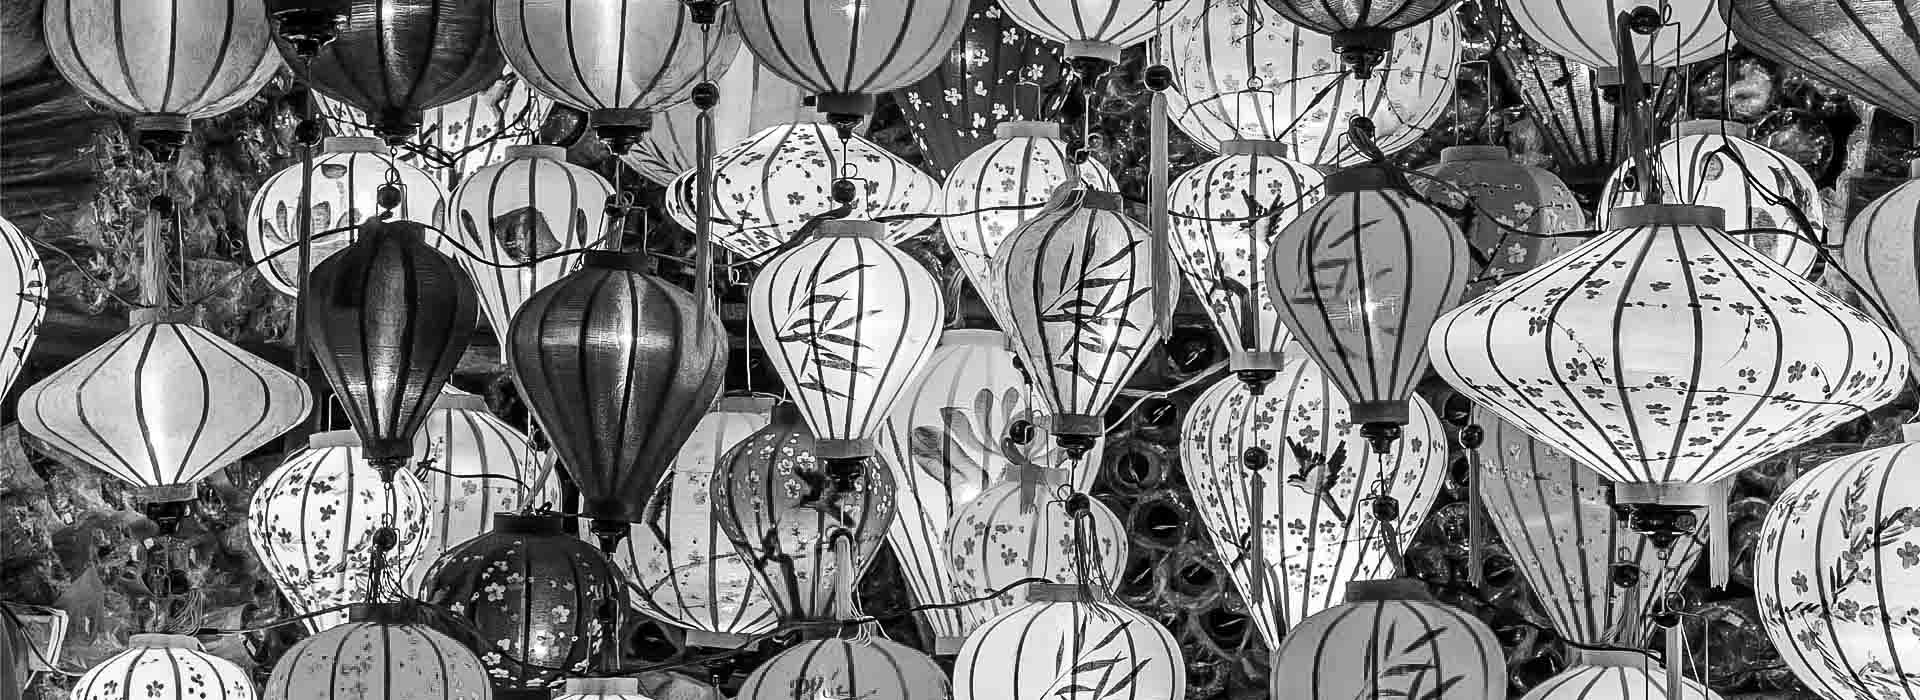 Image of a group of Chinese lanterns